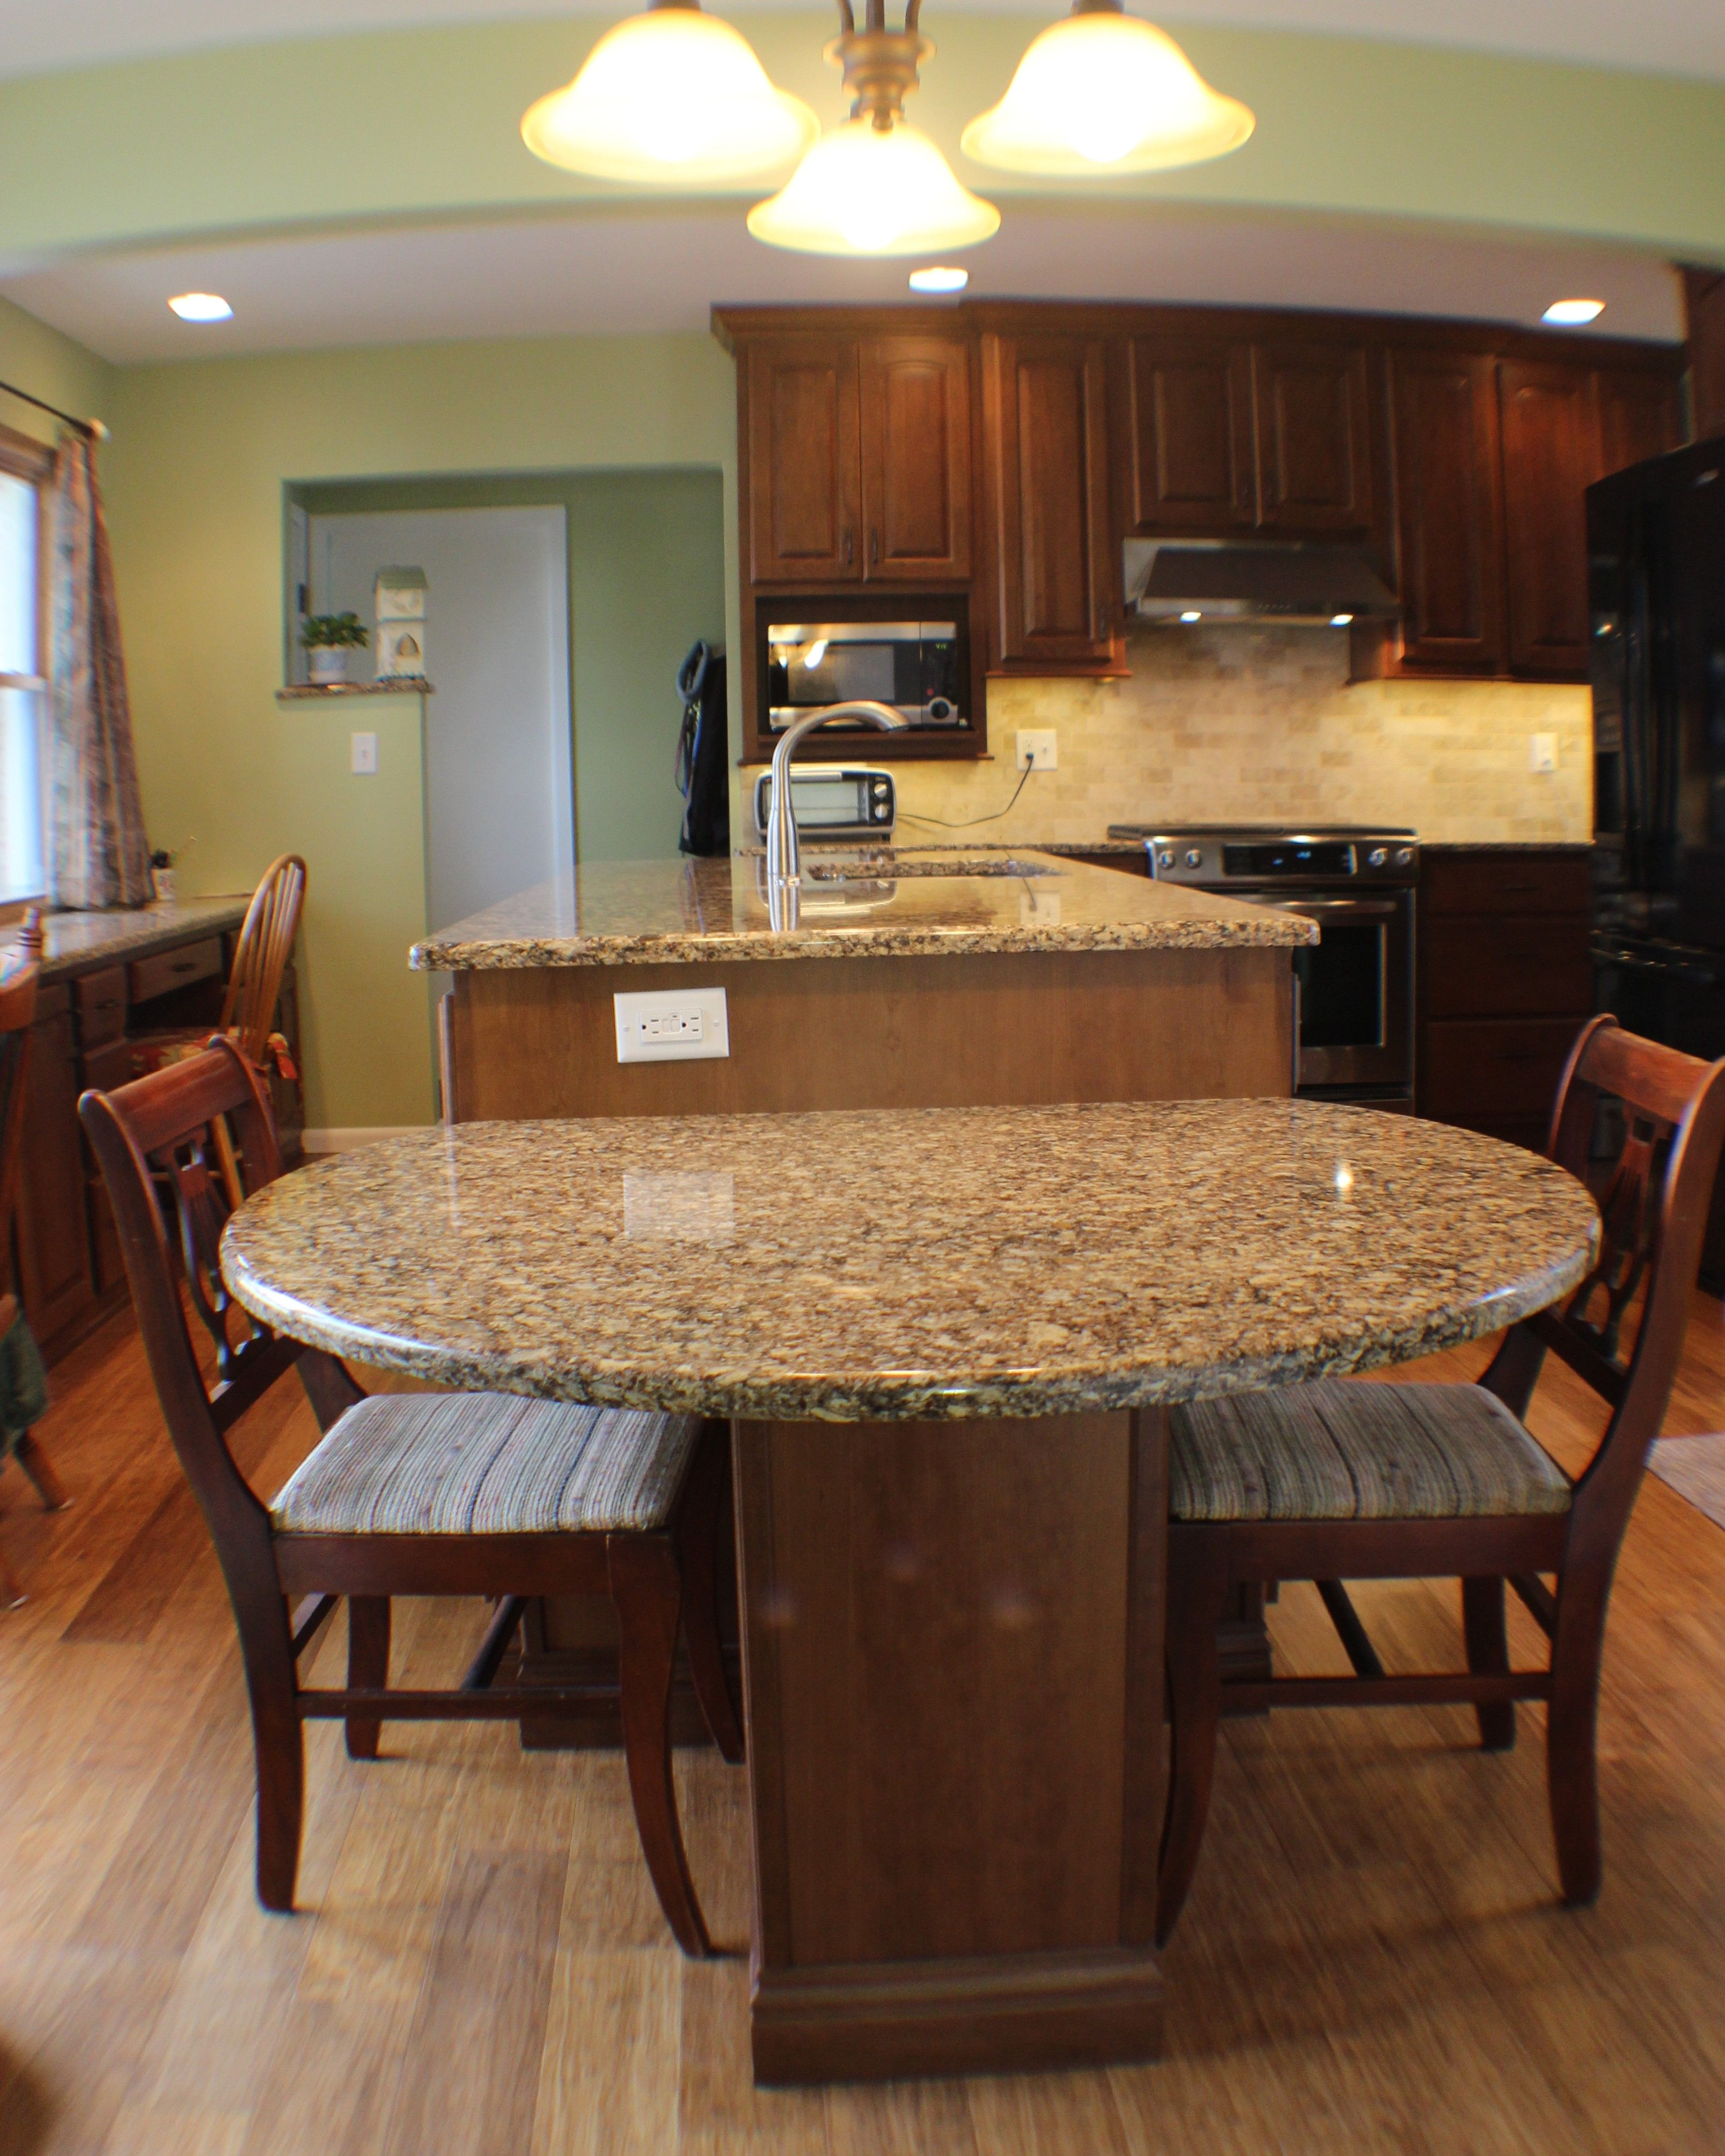 Kitchen Island With Table Height Seating This Two-level #island Drops Down To Table Height For Easy